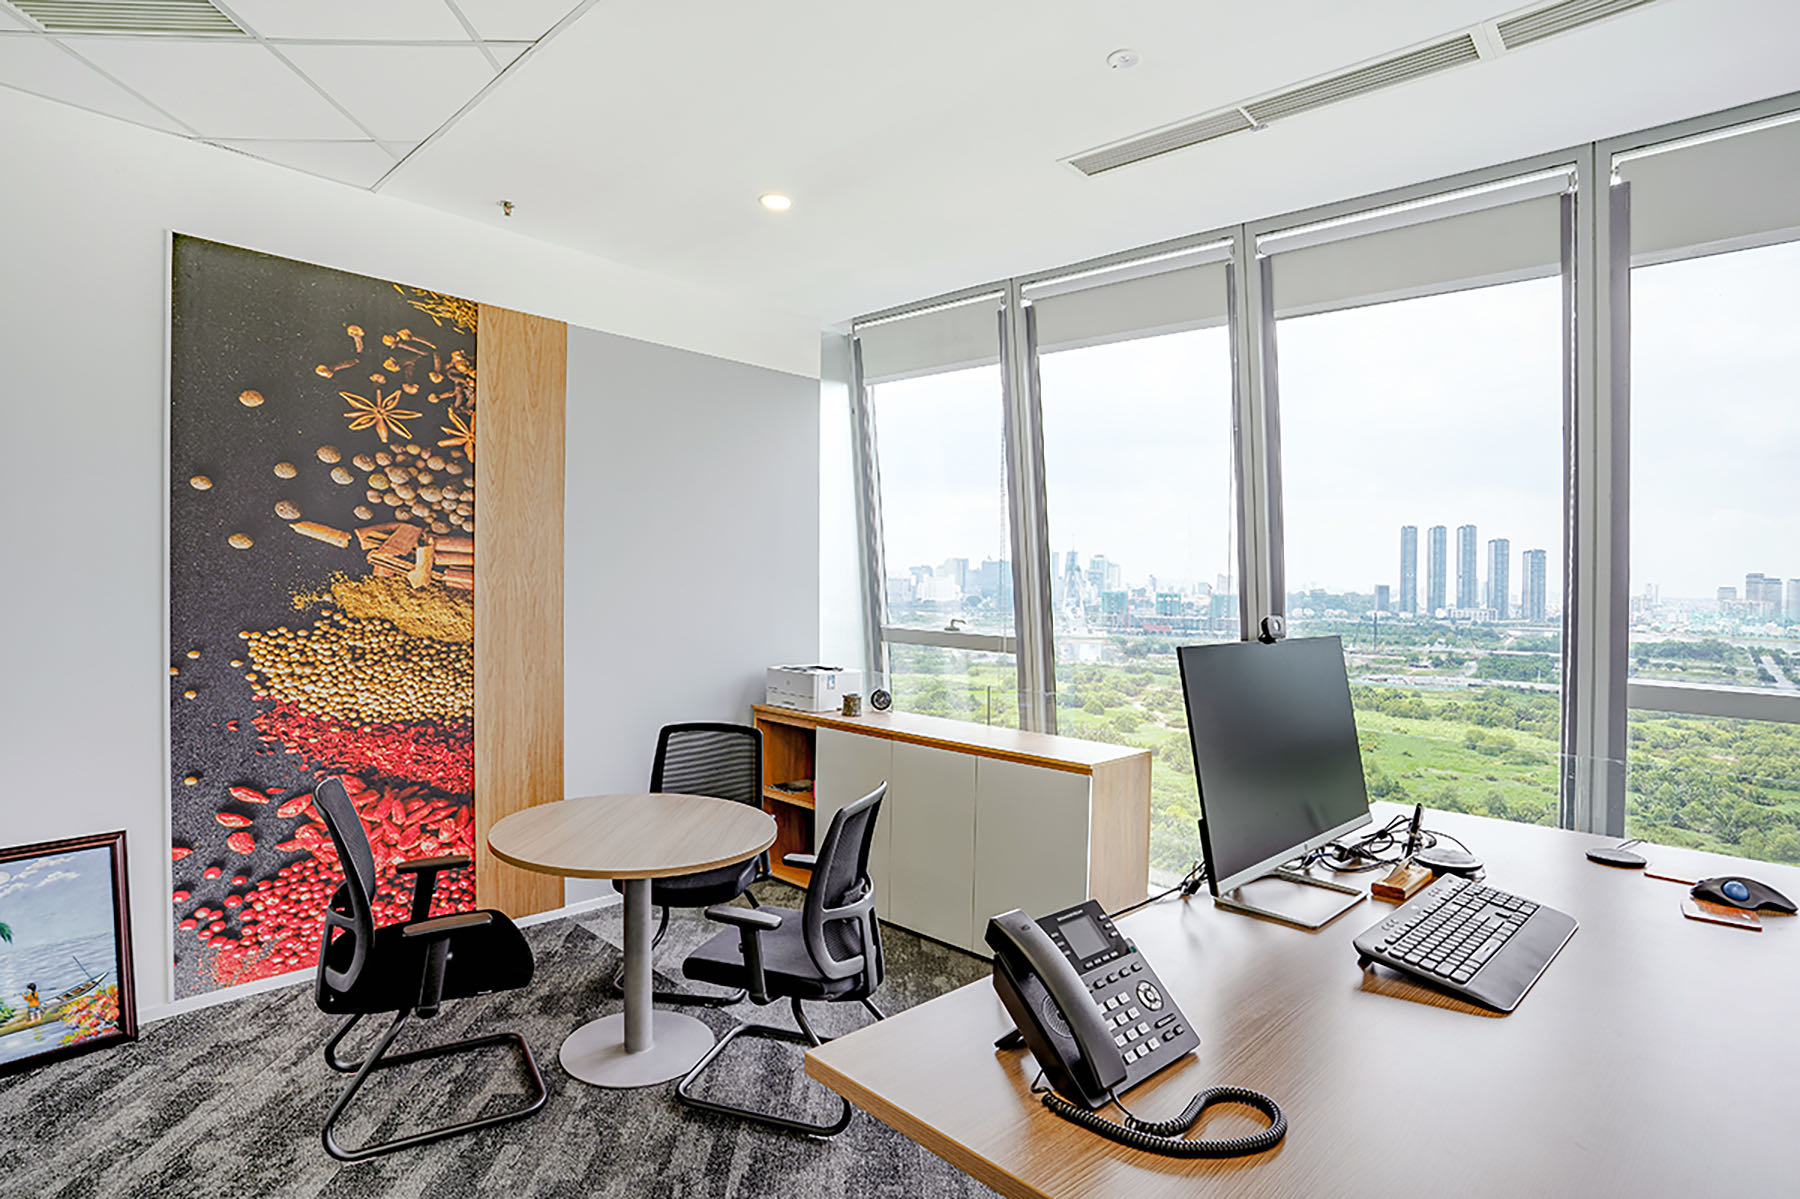 connell-vietnam-office-12